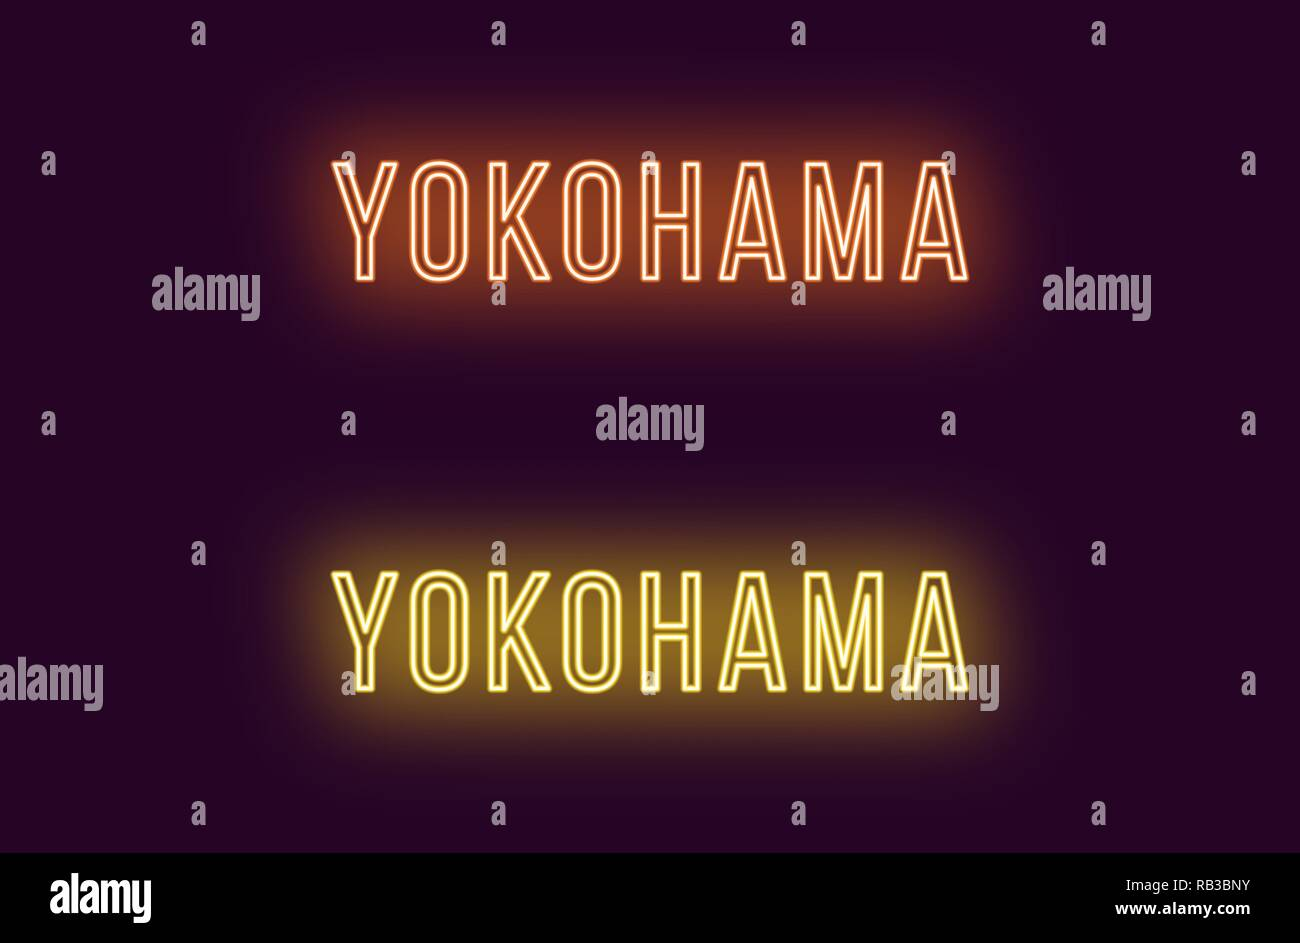 Neon name of Yokohama city in Japan. Vector text of Yokohama, Neon inscription with backlight in Thin style, orange and yellow colors. Isolated glowin - Stock Vector